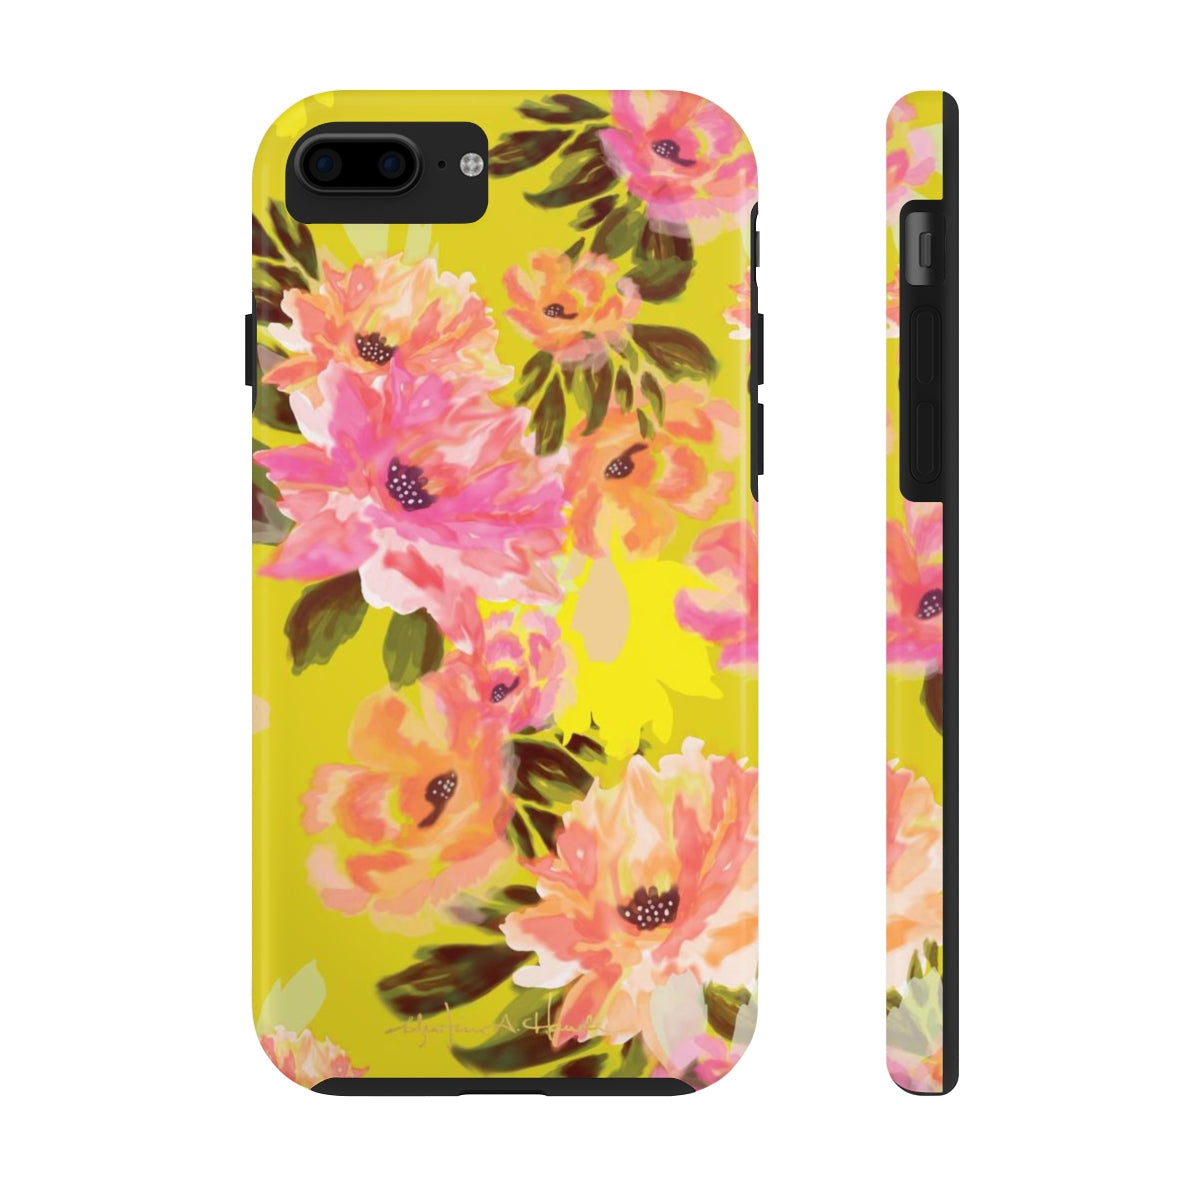 Analucia Added Amour Phone Case